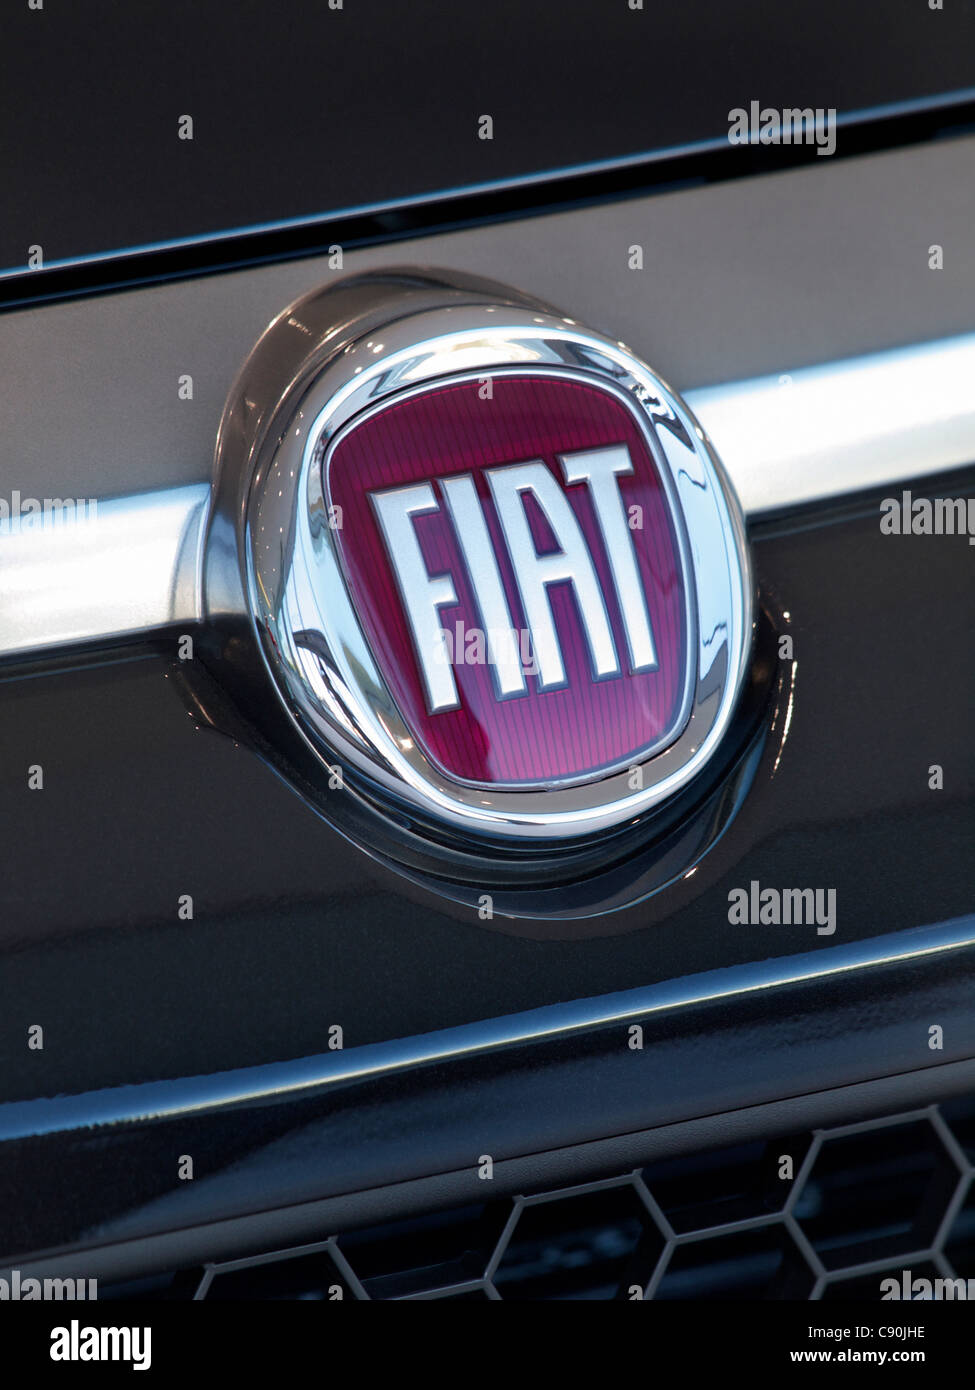 Fiat Logo Badge On The Front Of A Fiat Punto Car Fiat Is An Acronym Stock Photo Alamy